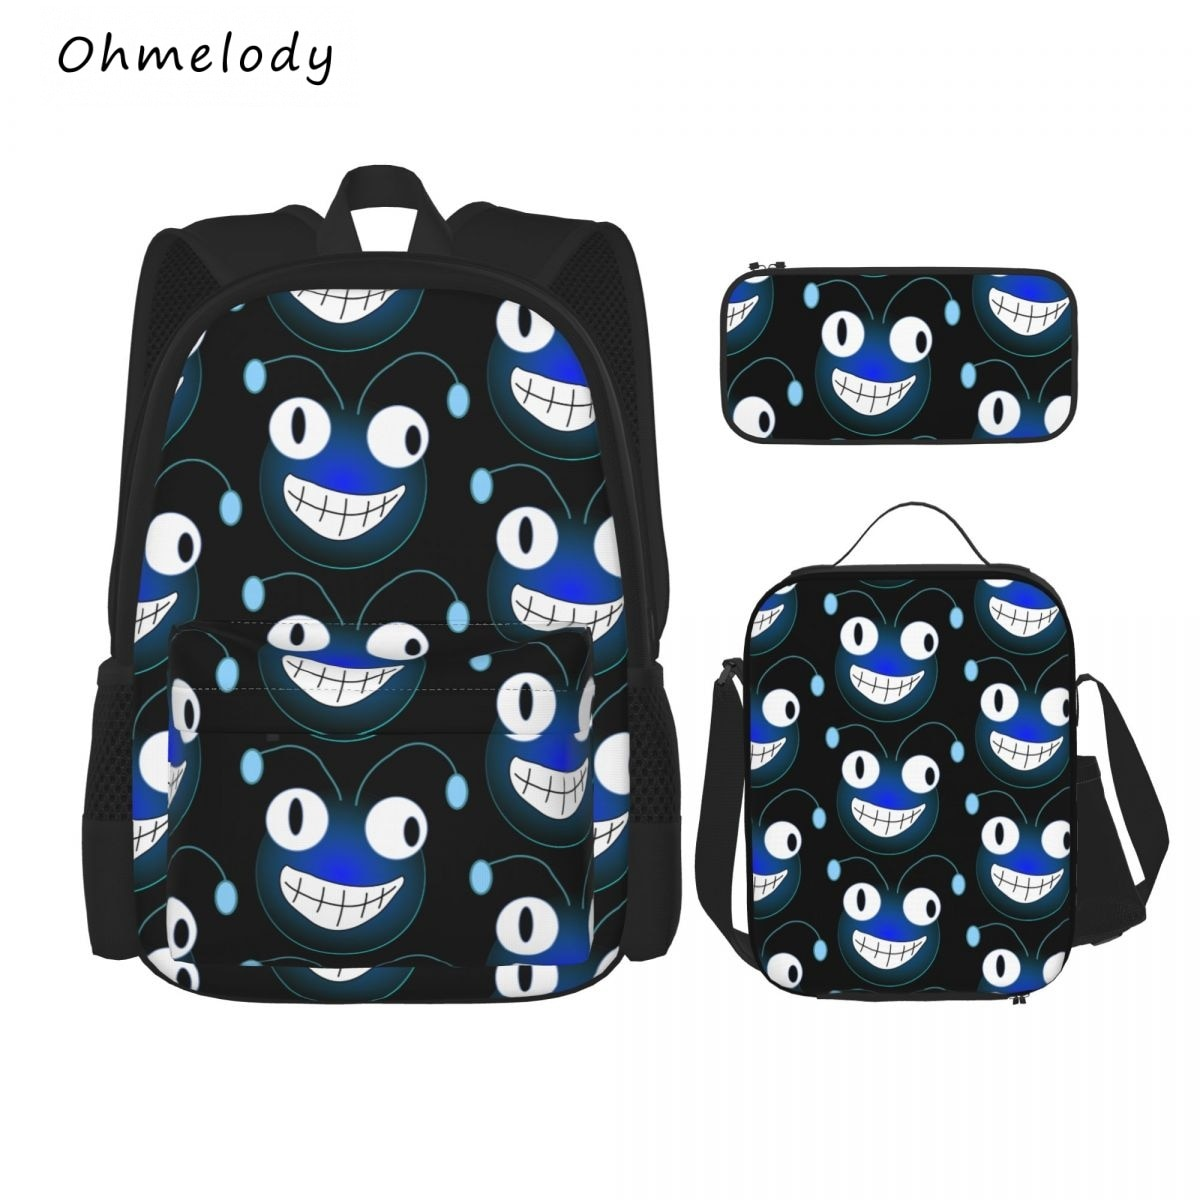 Cartoon Smile Face Teenage Boys Girls School Backpack Lunch Bag Pencil Case 3PCS Casual Daypacks College 15.6in Laptop